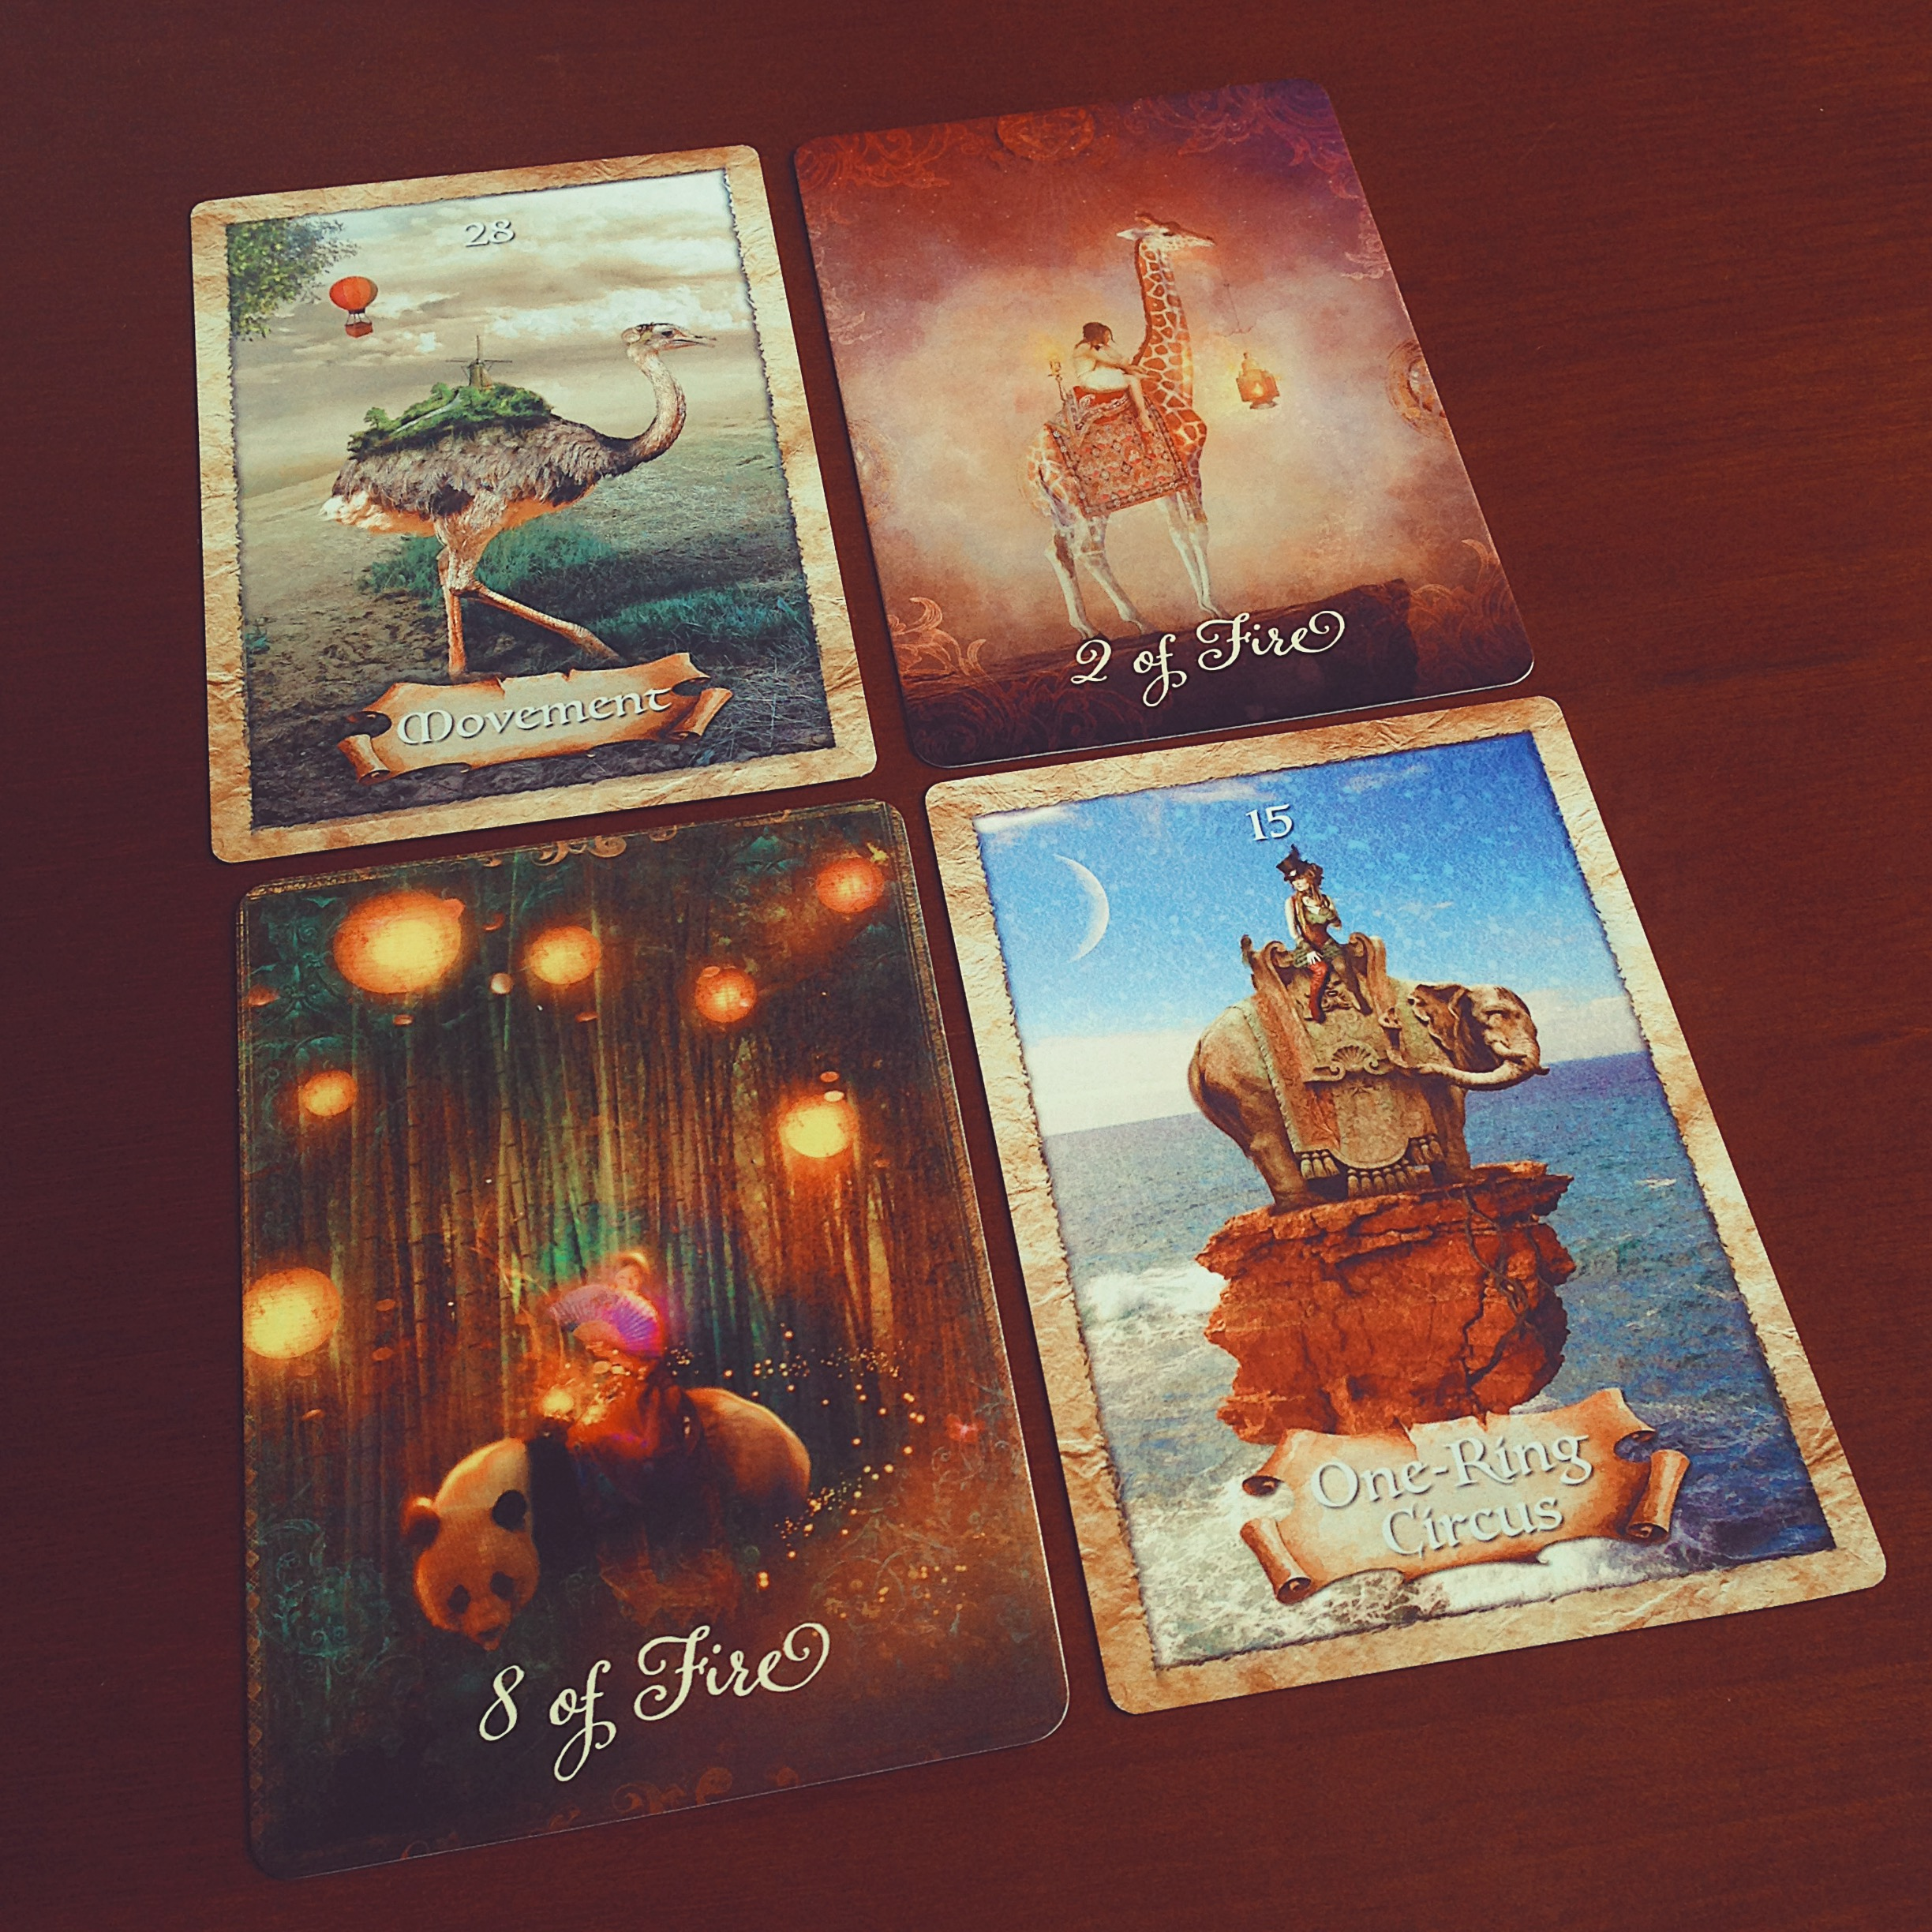 Ảnh: Nguyễn Hiếy Bộ bài: Enchanted Map Oracle Cards & The Good Tarot